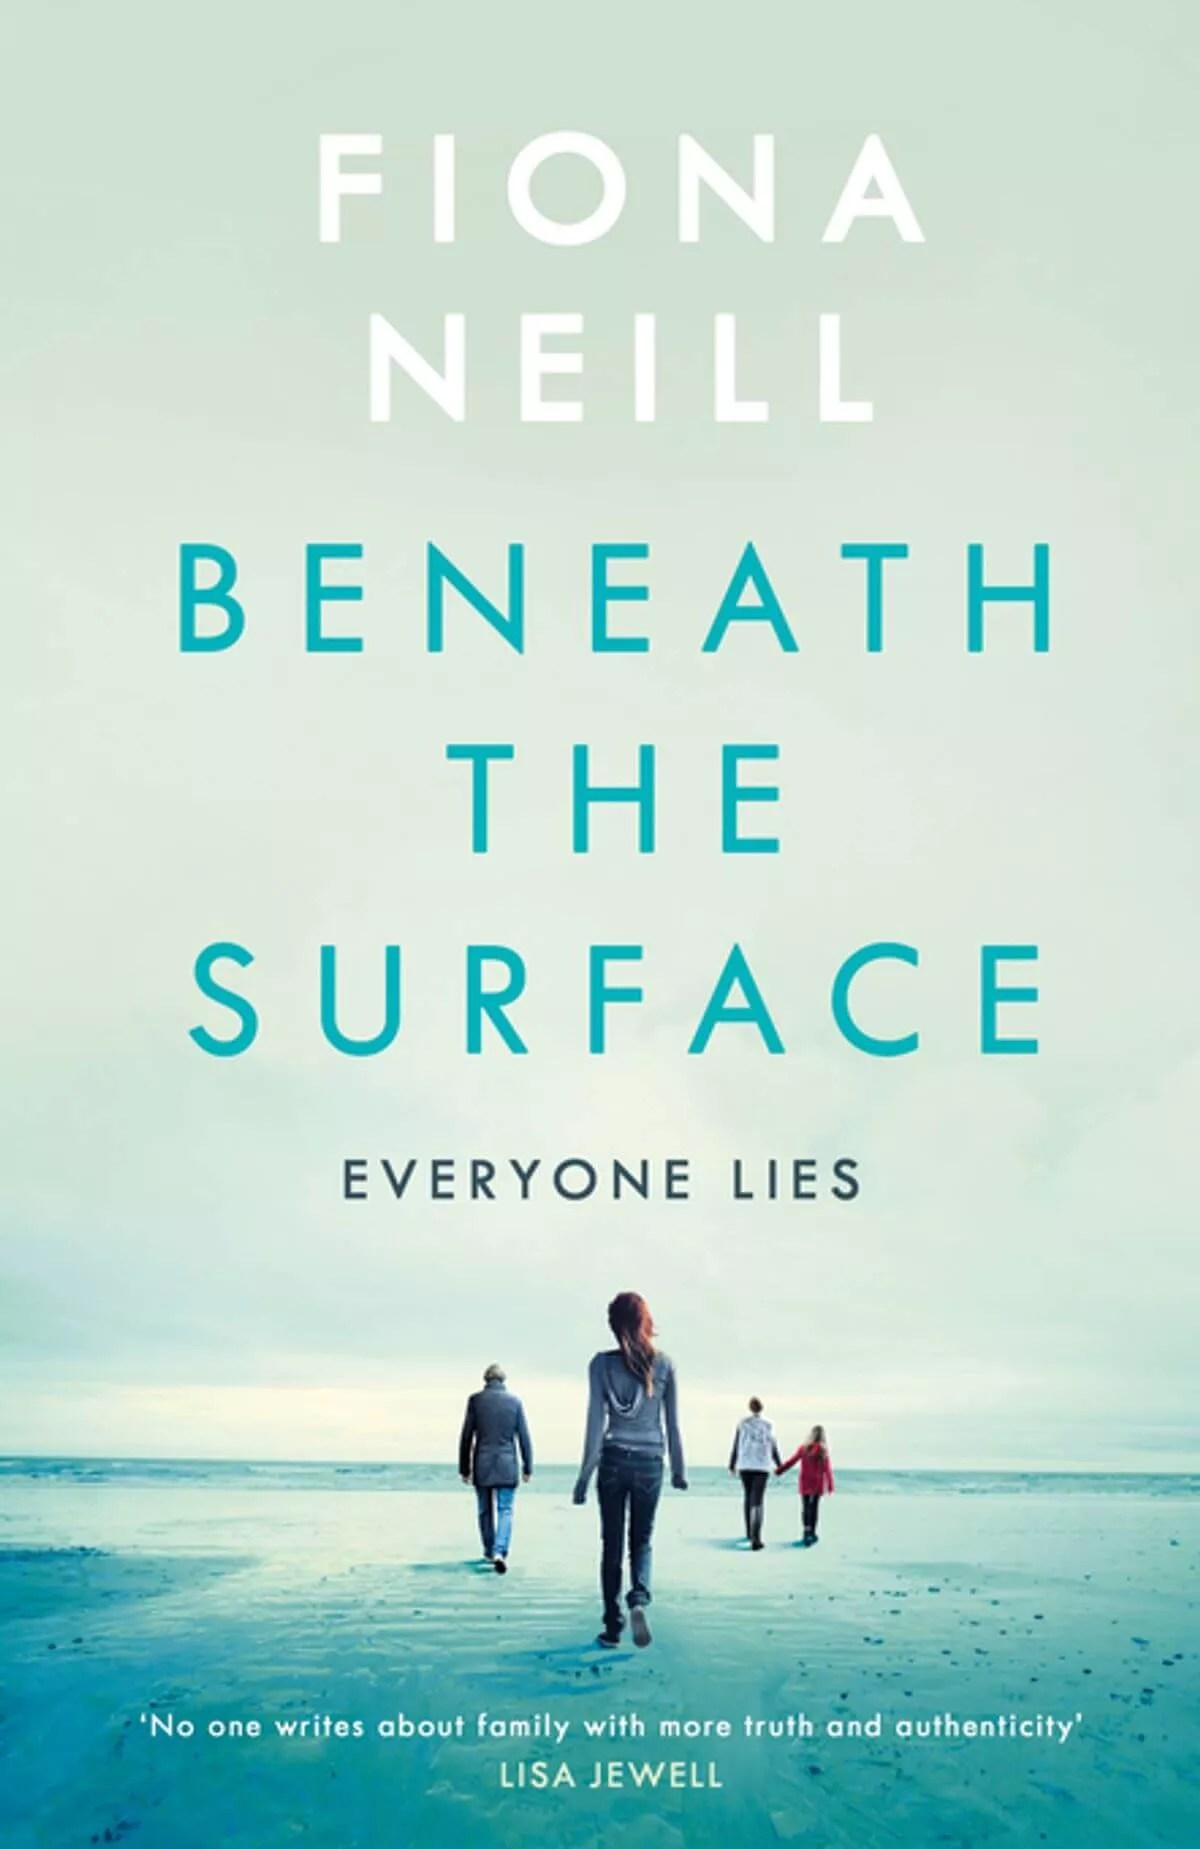 Beneath the surface Fiona Neill